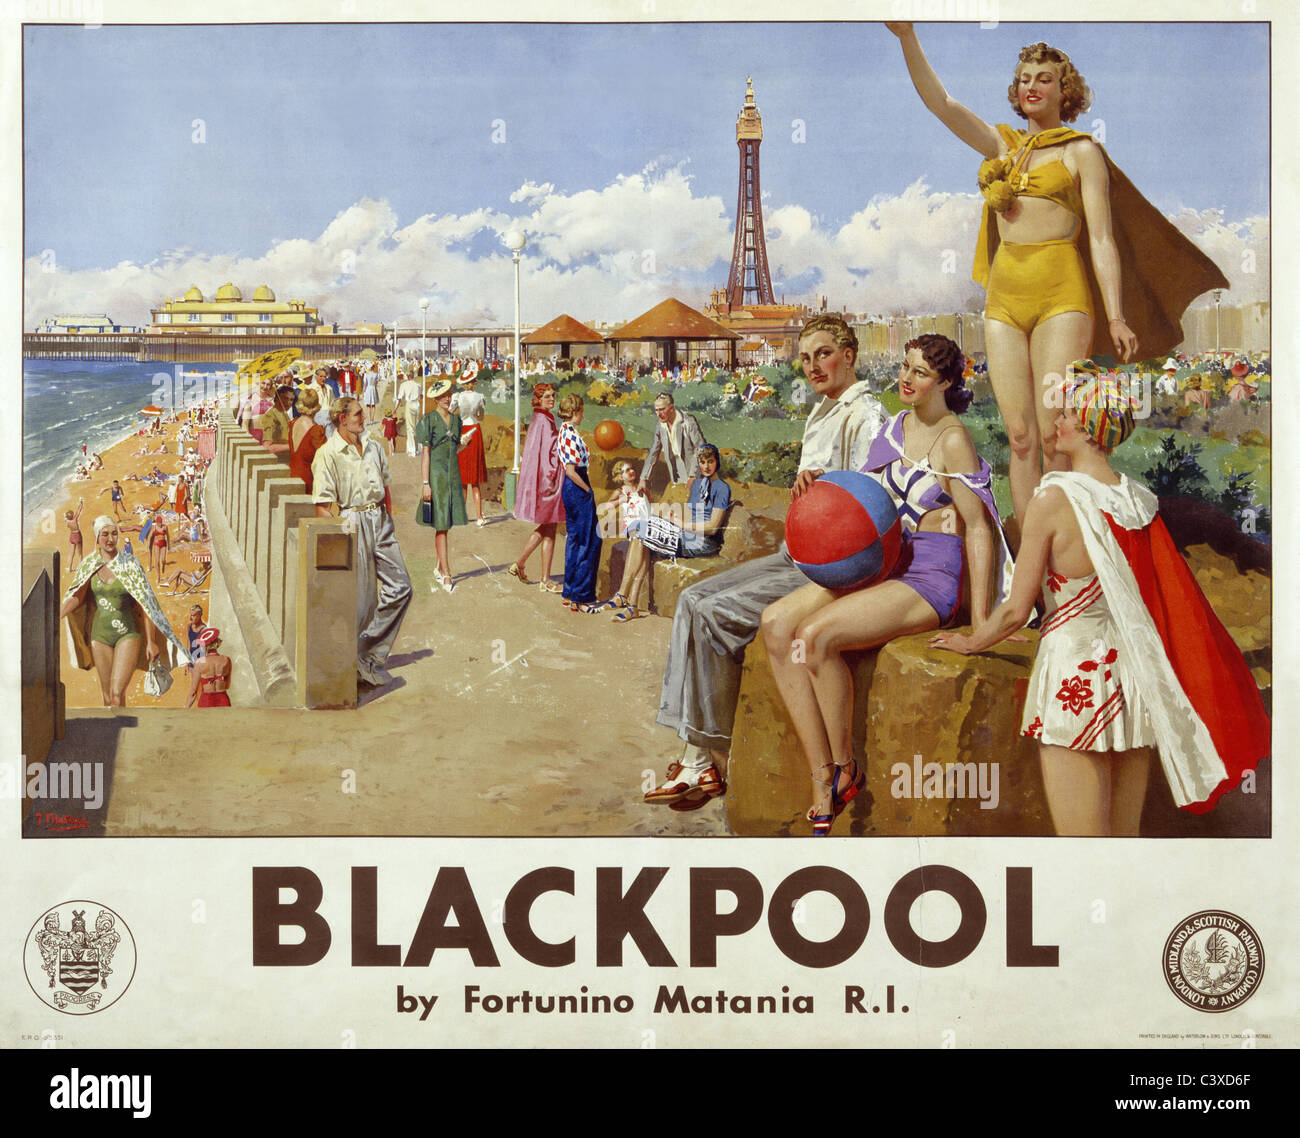 Blackpool, by Fortunino Matania. England, early 20th century - Stock Image